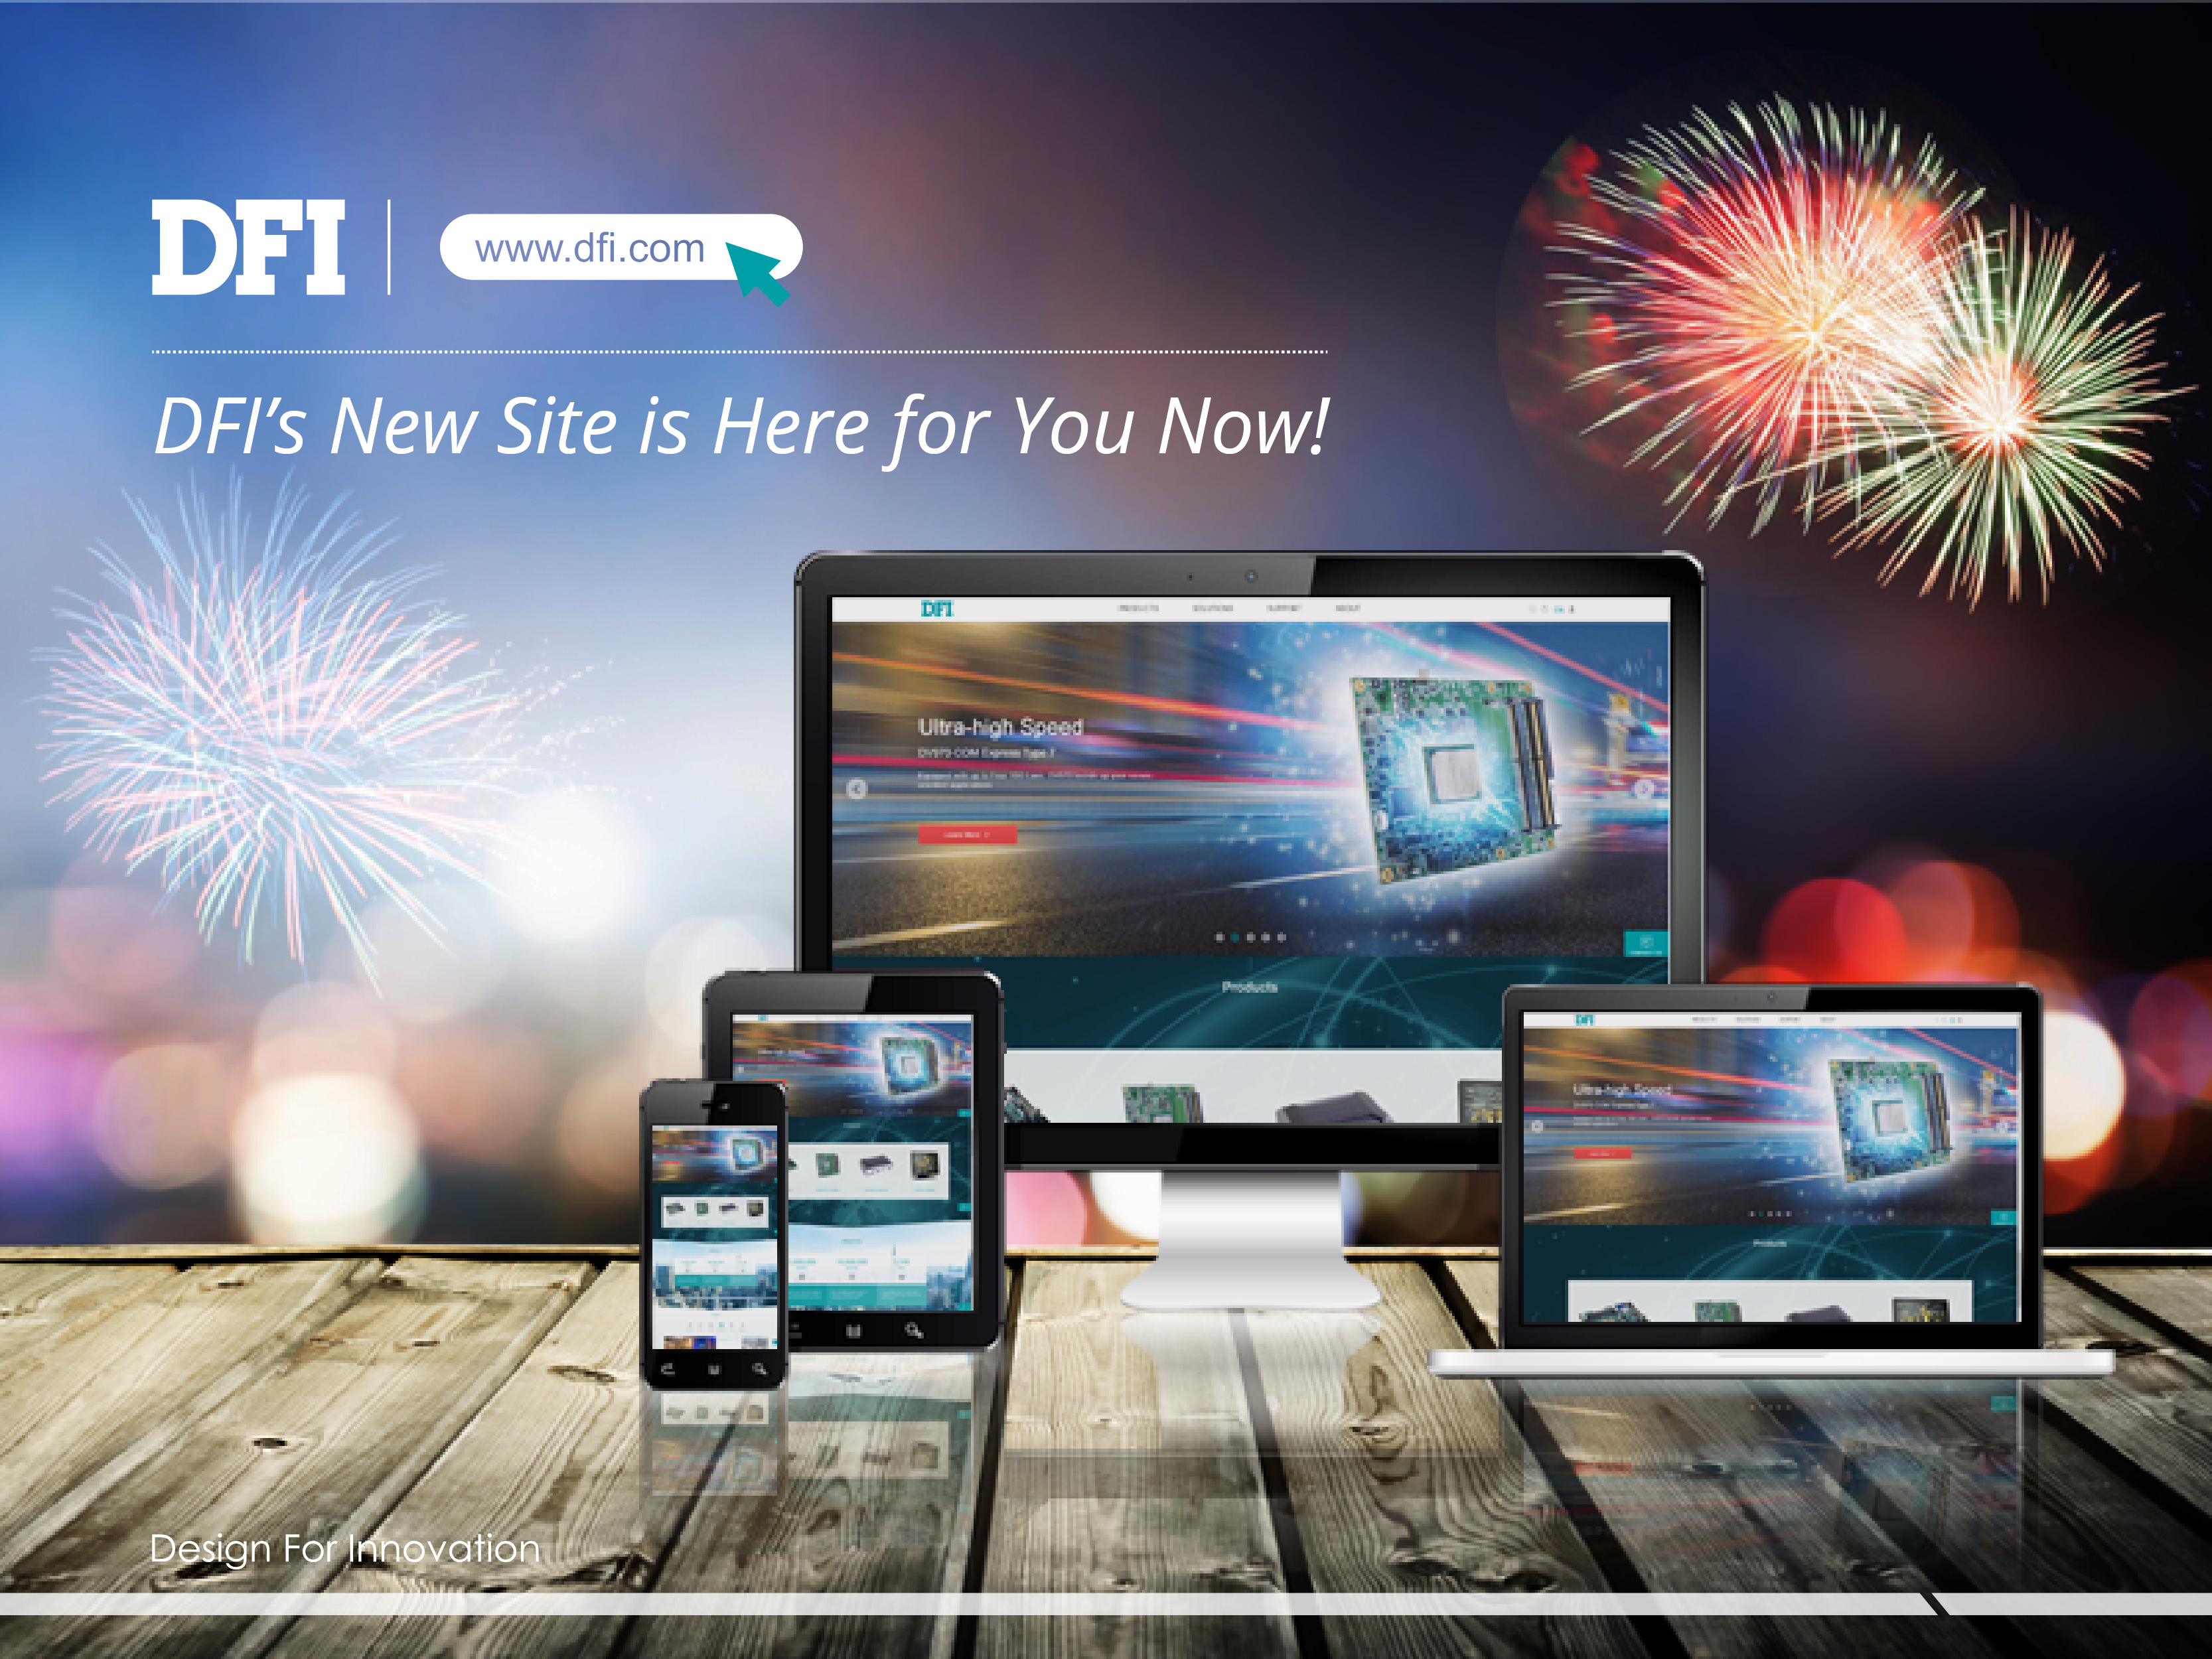 DFI's New Site is Here for You Now!